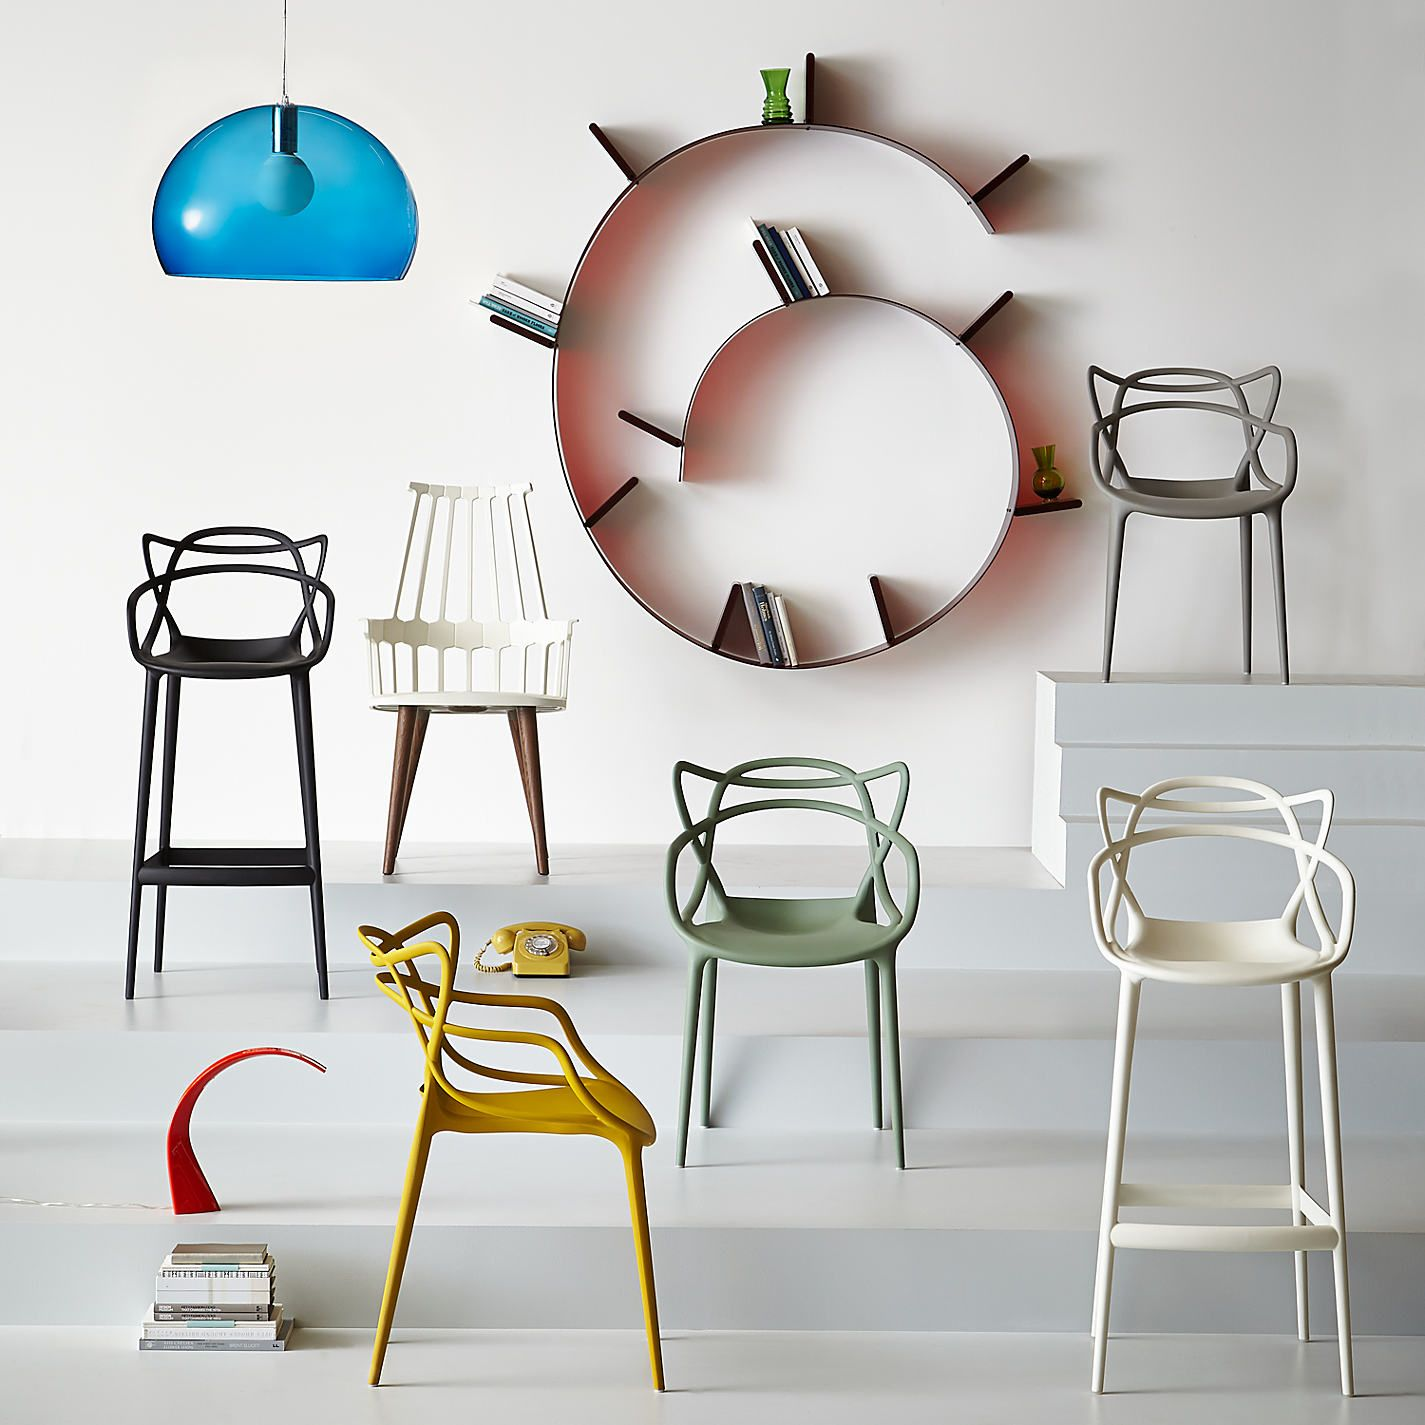 Kartell Masters & Co. | Kartell Collection | Pinterest